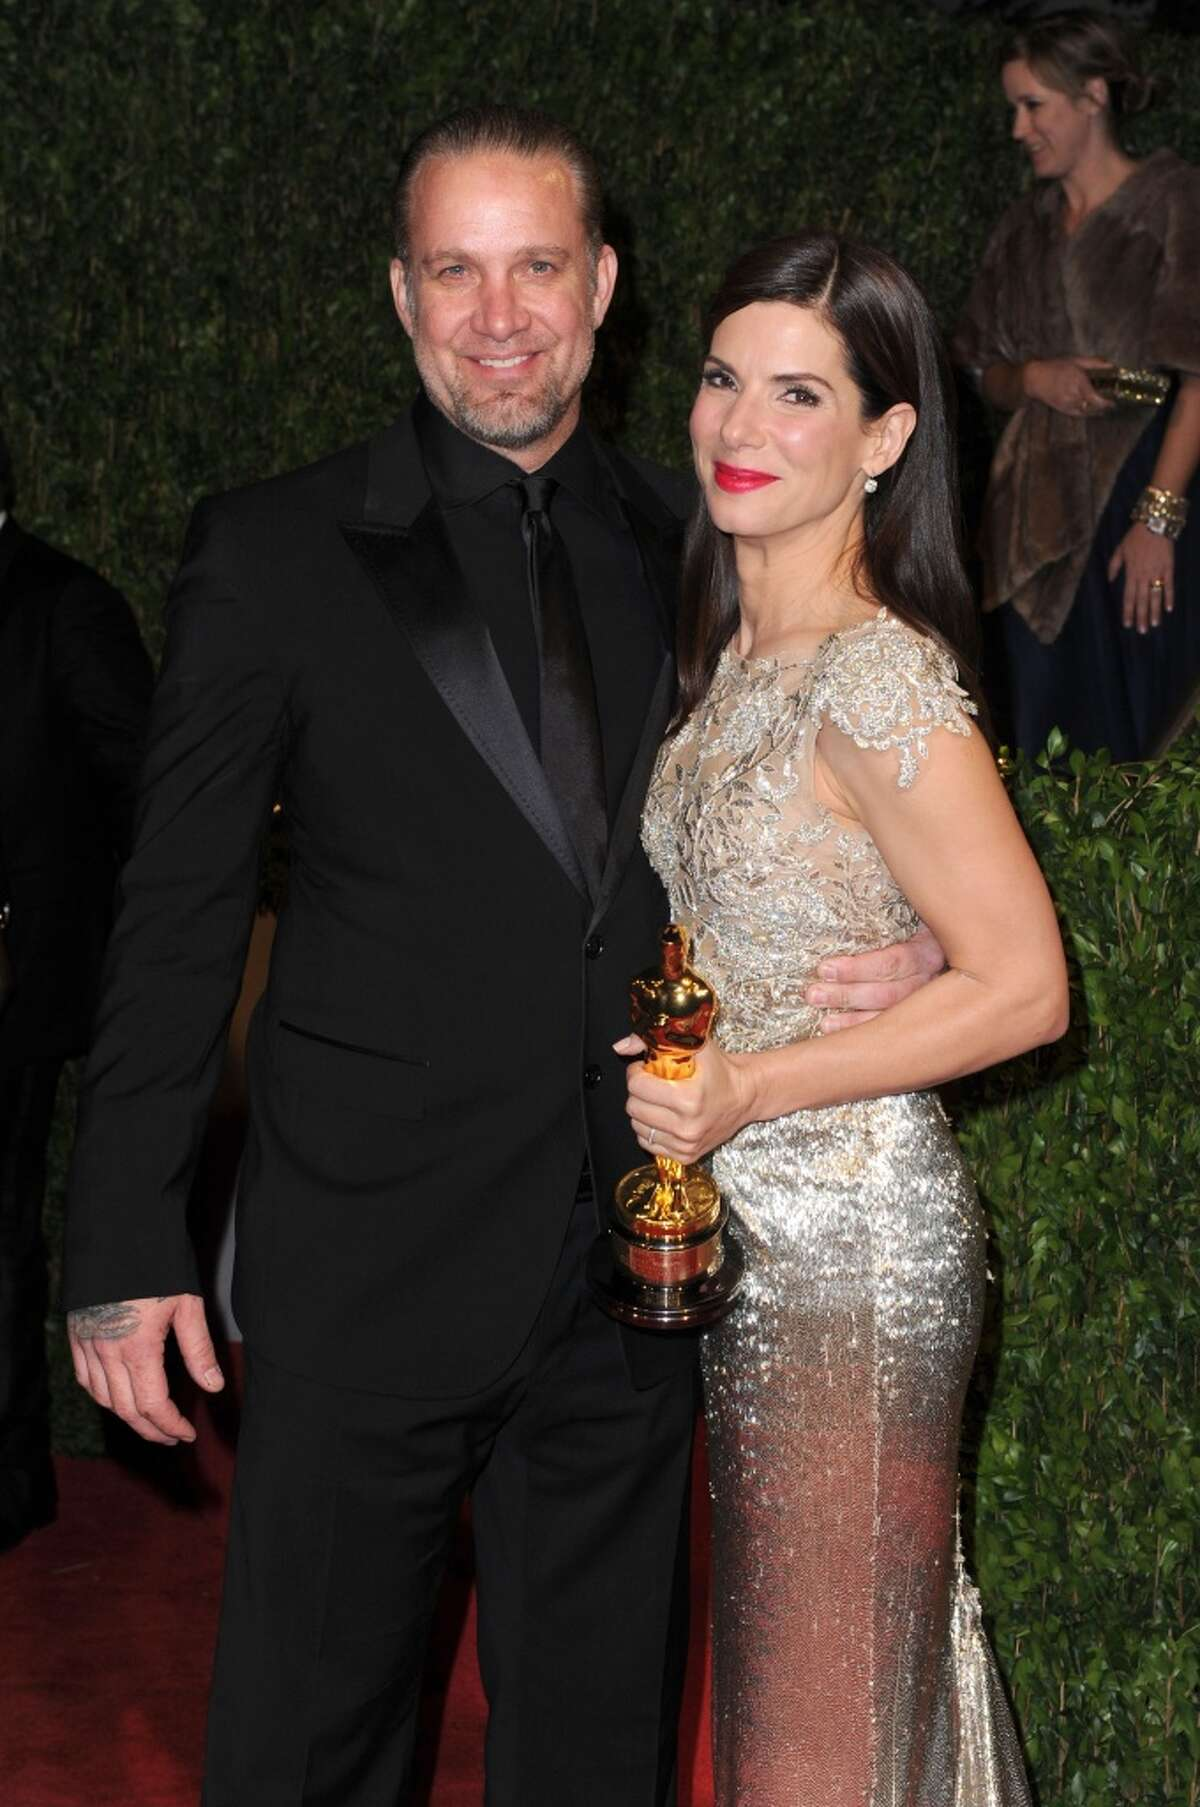 Jesse James and Sandra Bullock The couple was married from 2005-2010. Bullock famously divorced the one-time car show host after it surfaced in 2010 that James was having affairs with several women, most notably tattoo model Michelle